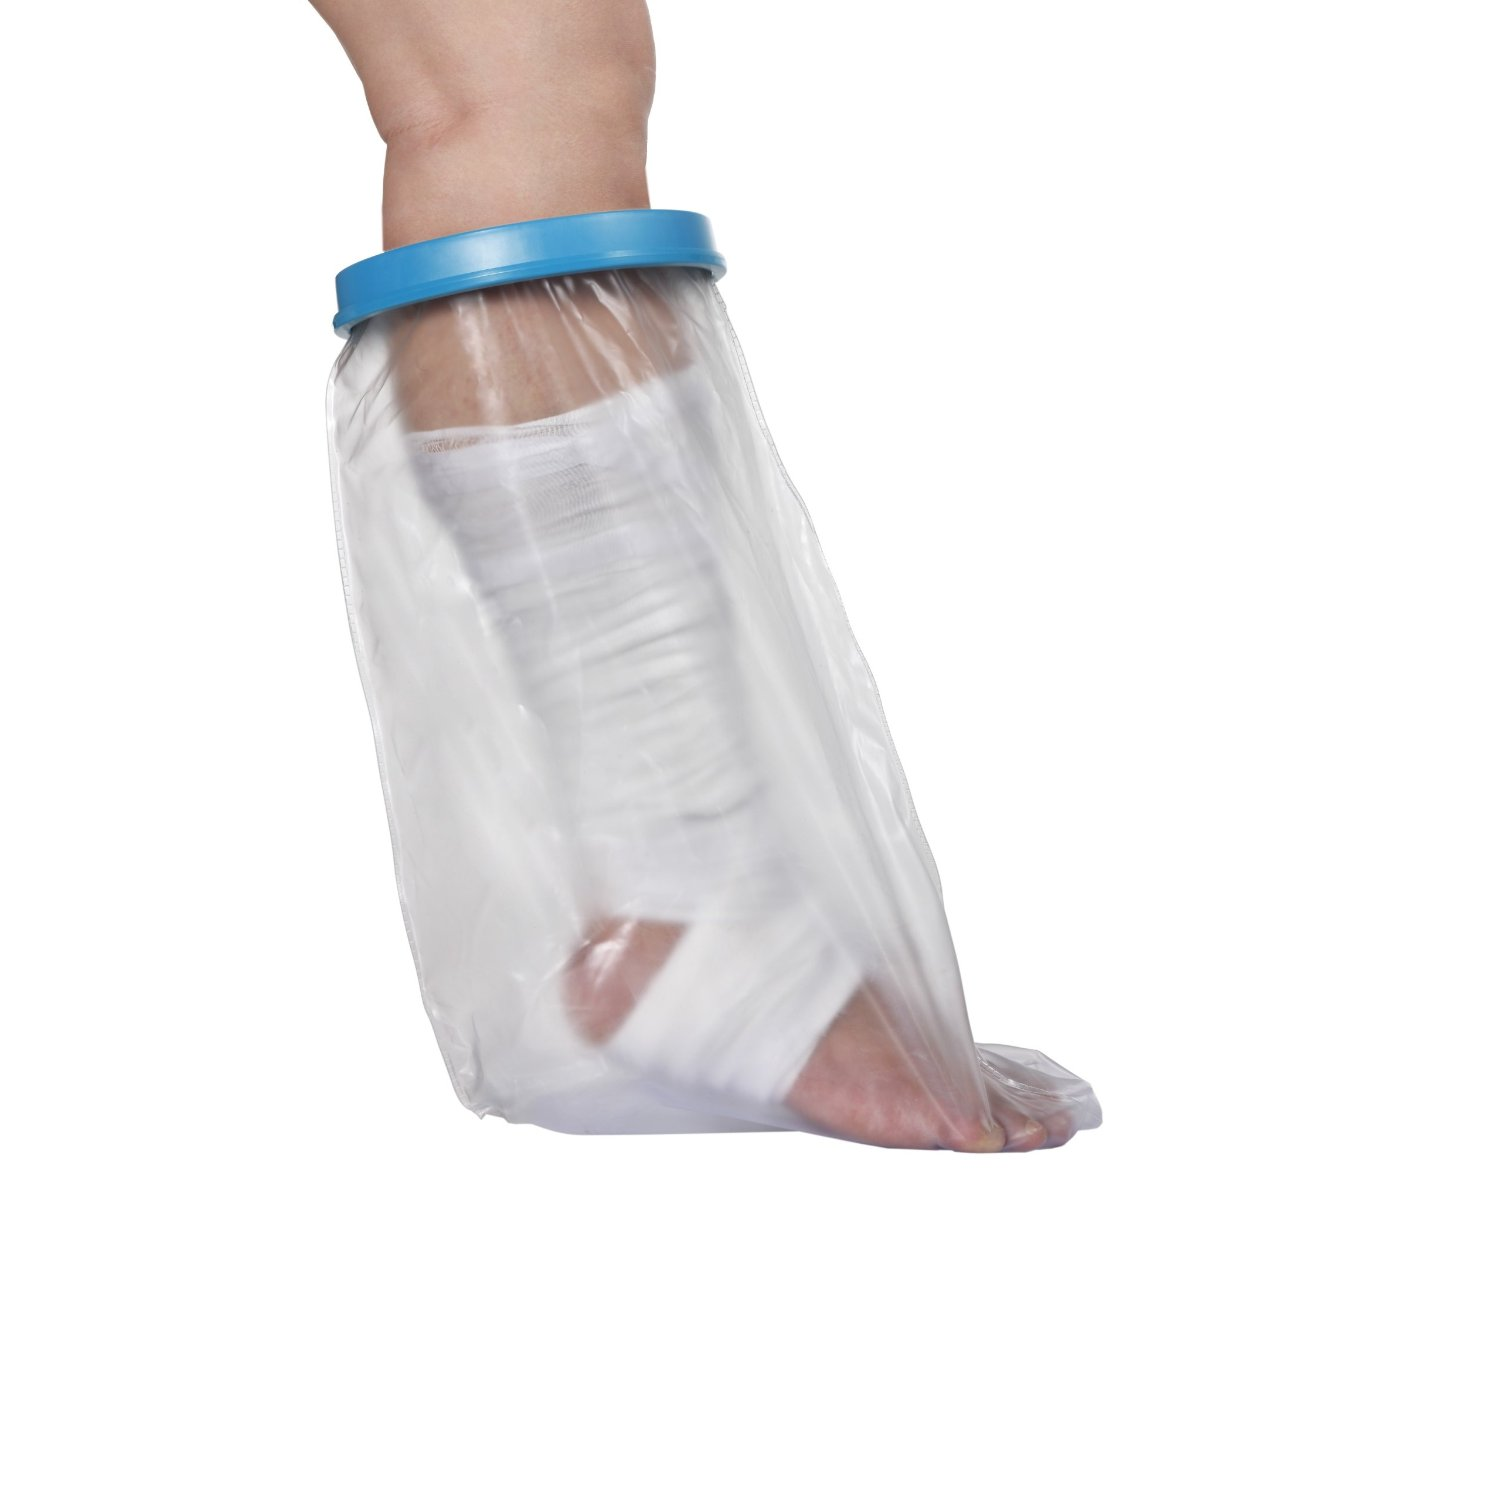 wound care supply Cedar waterproof po leg bath waterproof protective cover  bandage protector for feet hand